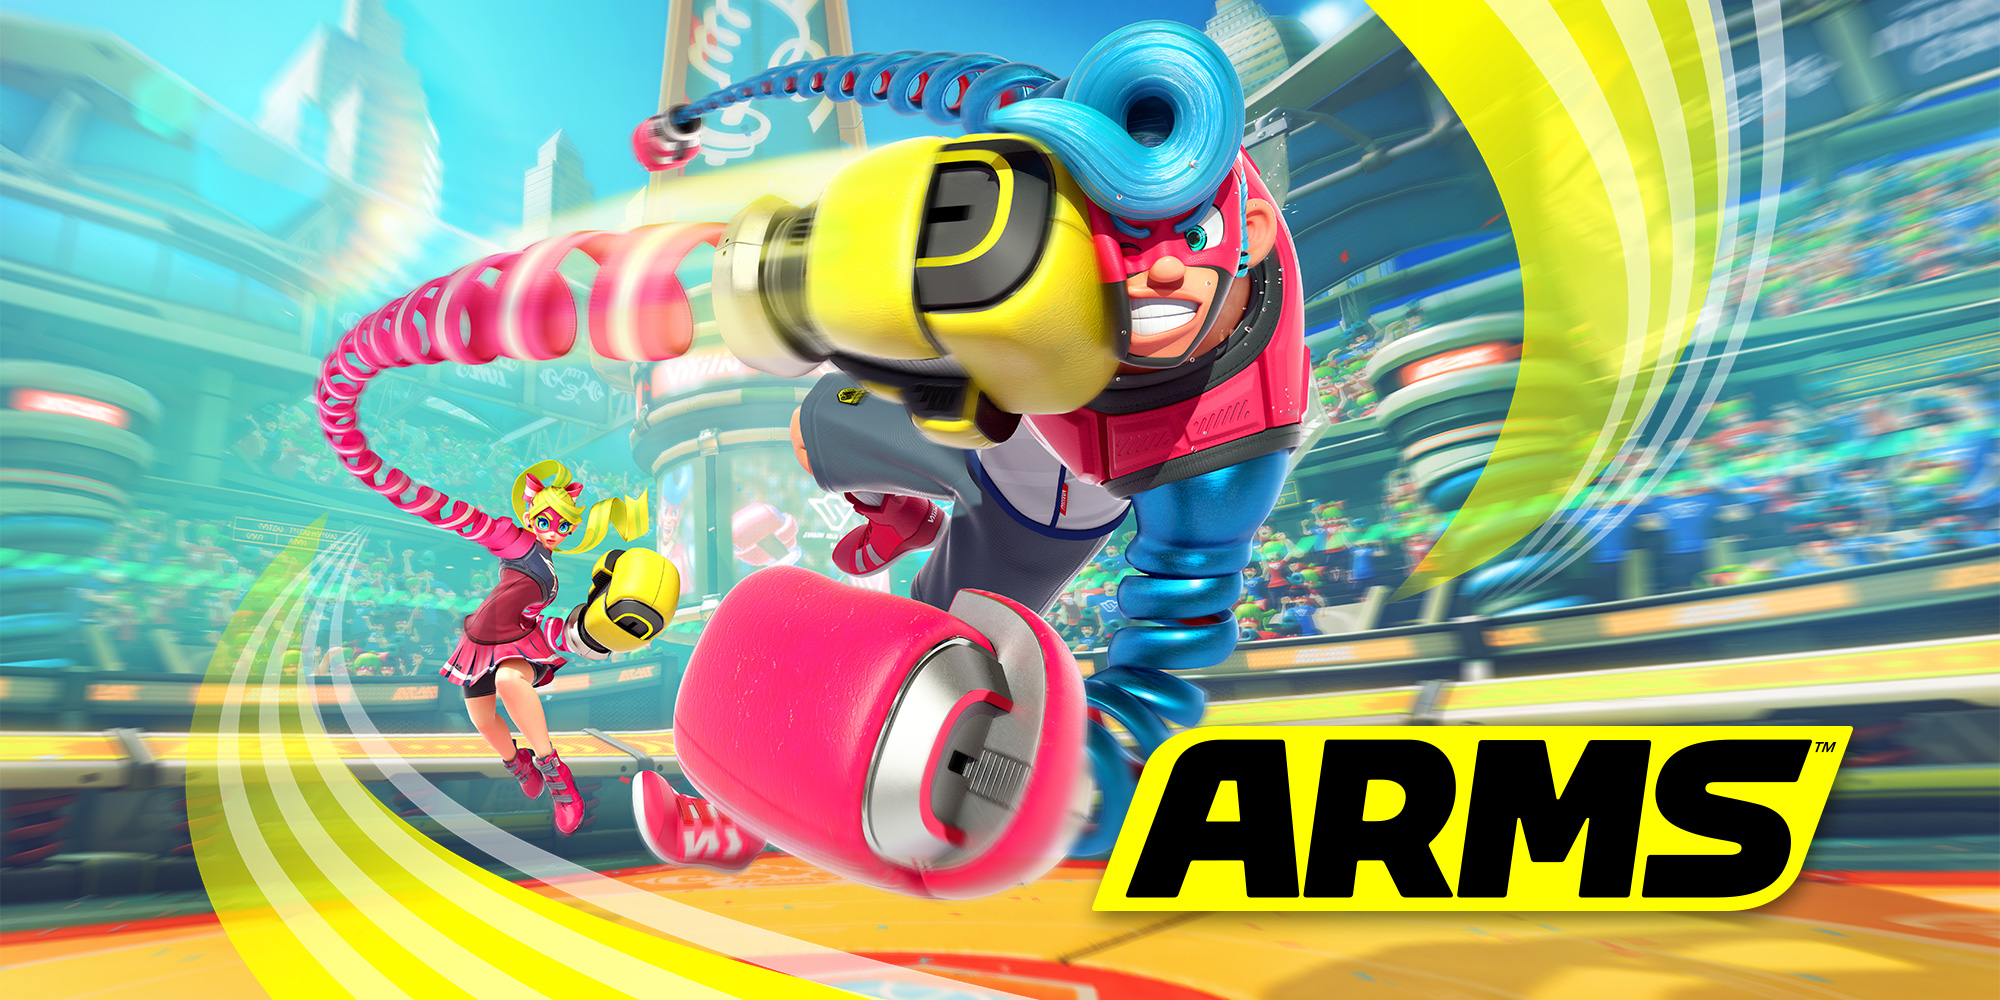 Mercoledì ci sarà un Nintendo Direct per Arms e Splatoon 2